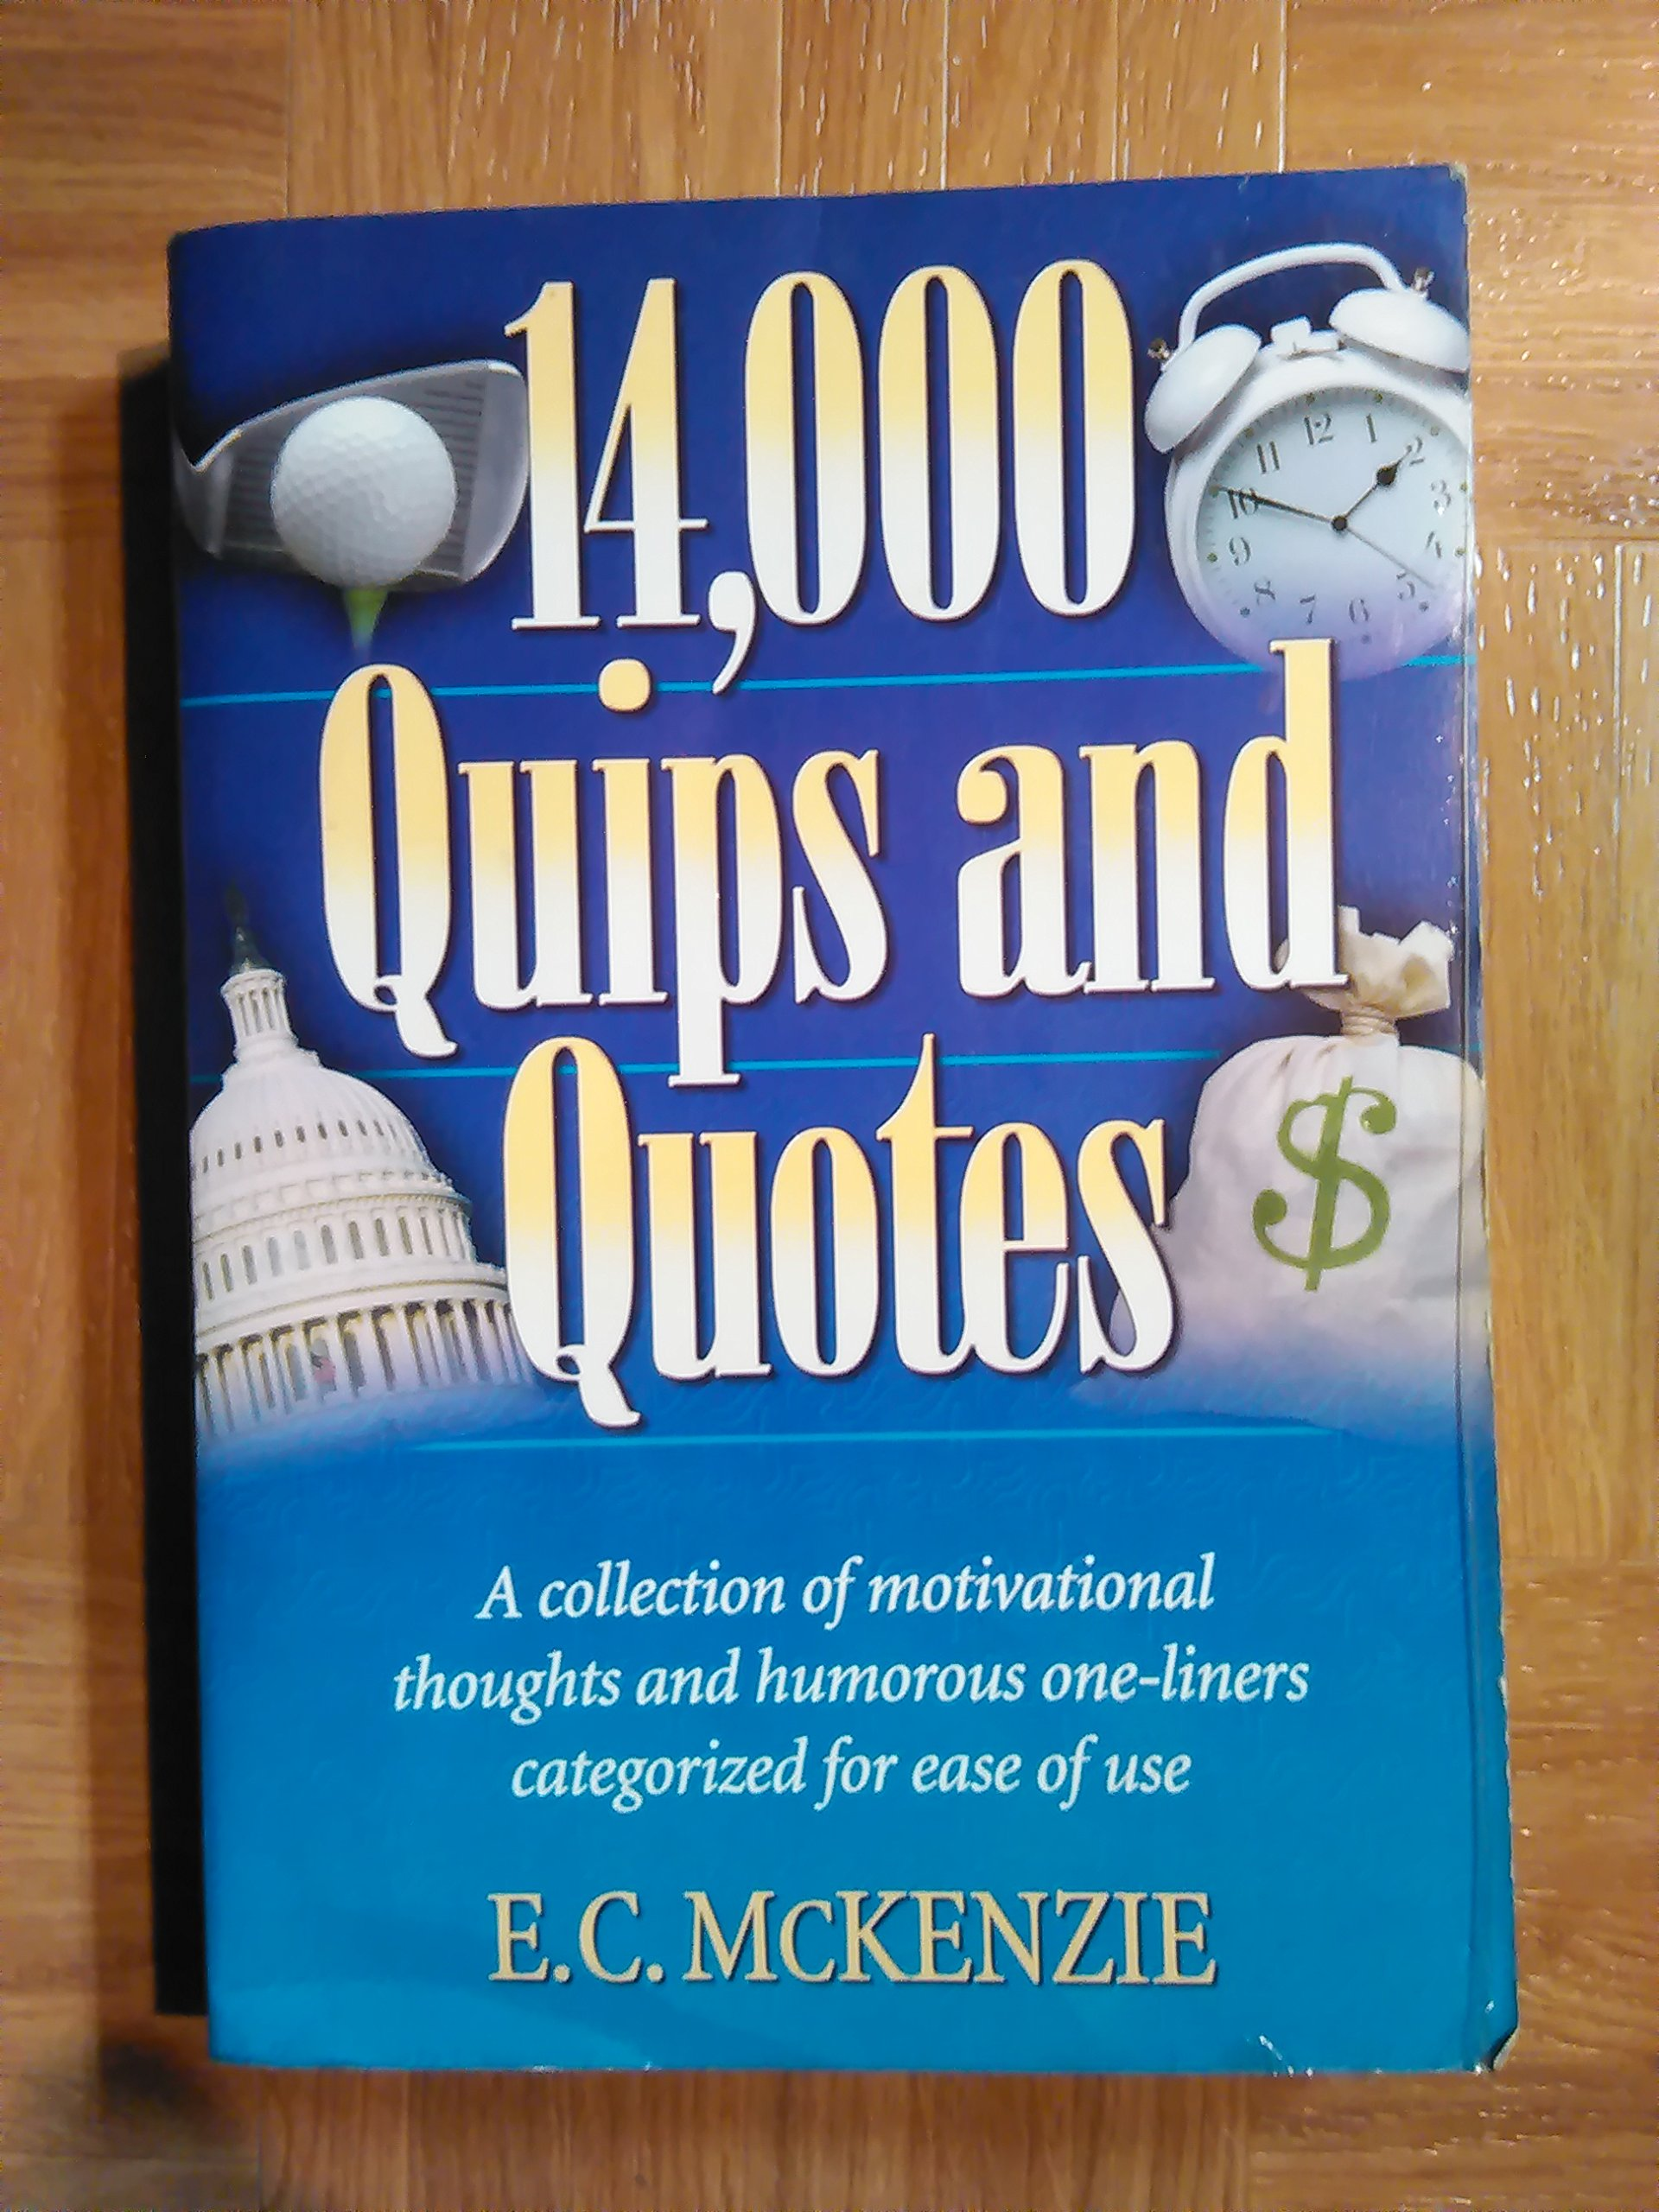 14 000 Quips And Quotes A Collection Of Motivational Thoughts And Humorous One Liners Categorised For Ease Of Use New Edition By Mckenzie E C Published By Hendrickson 2000 Books Amazon Ca